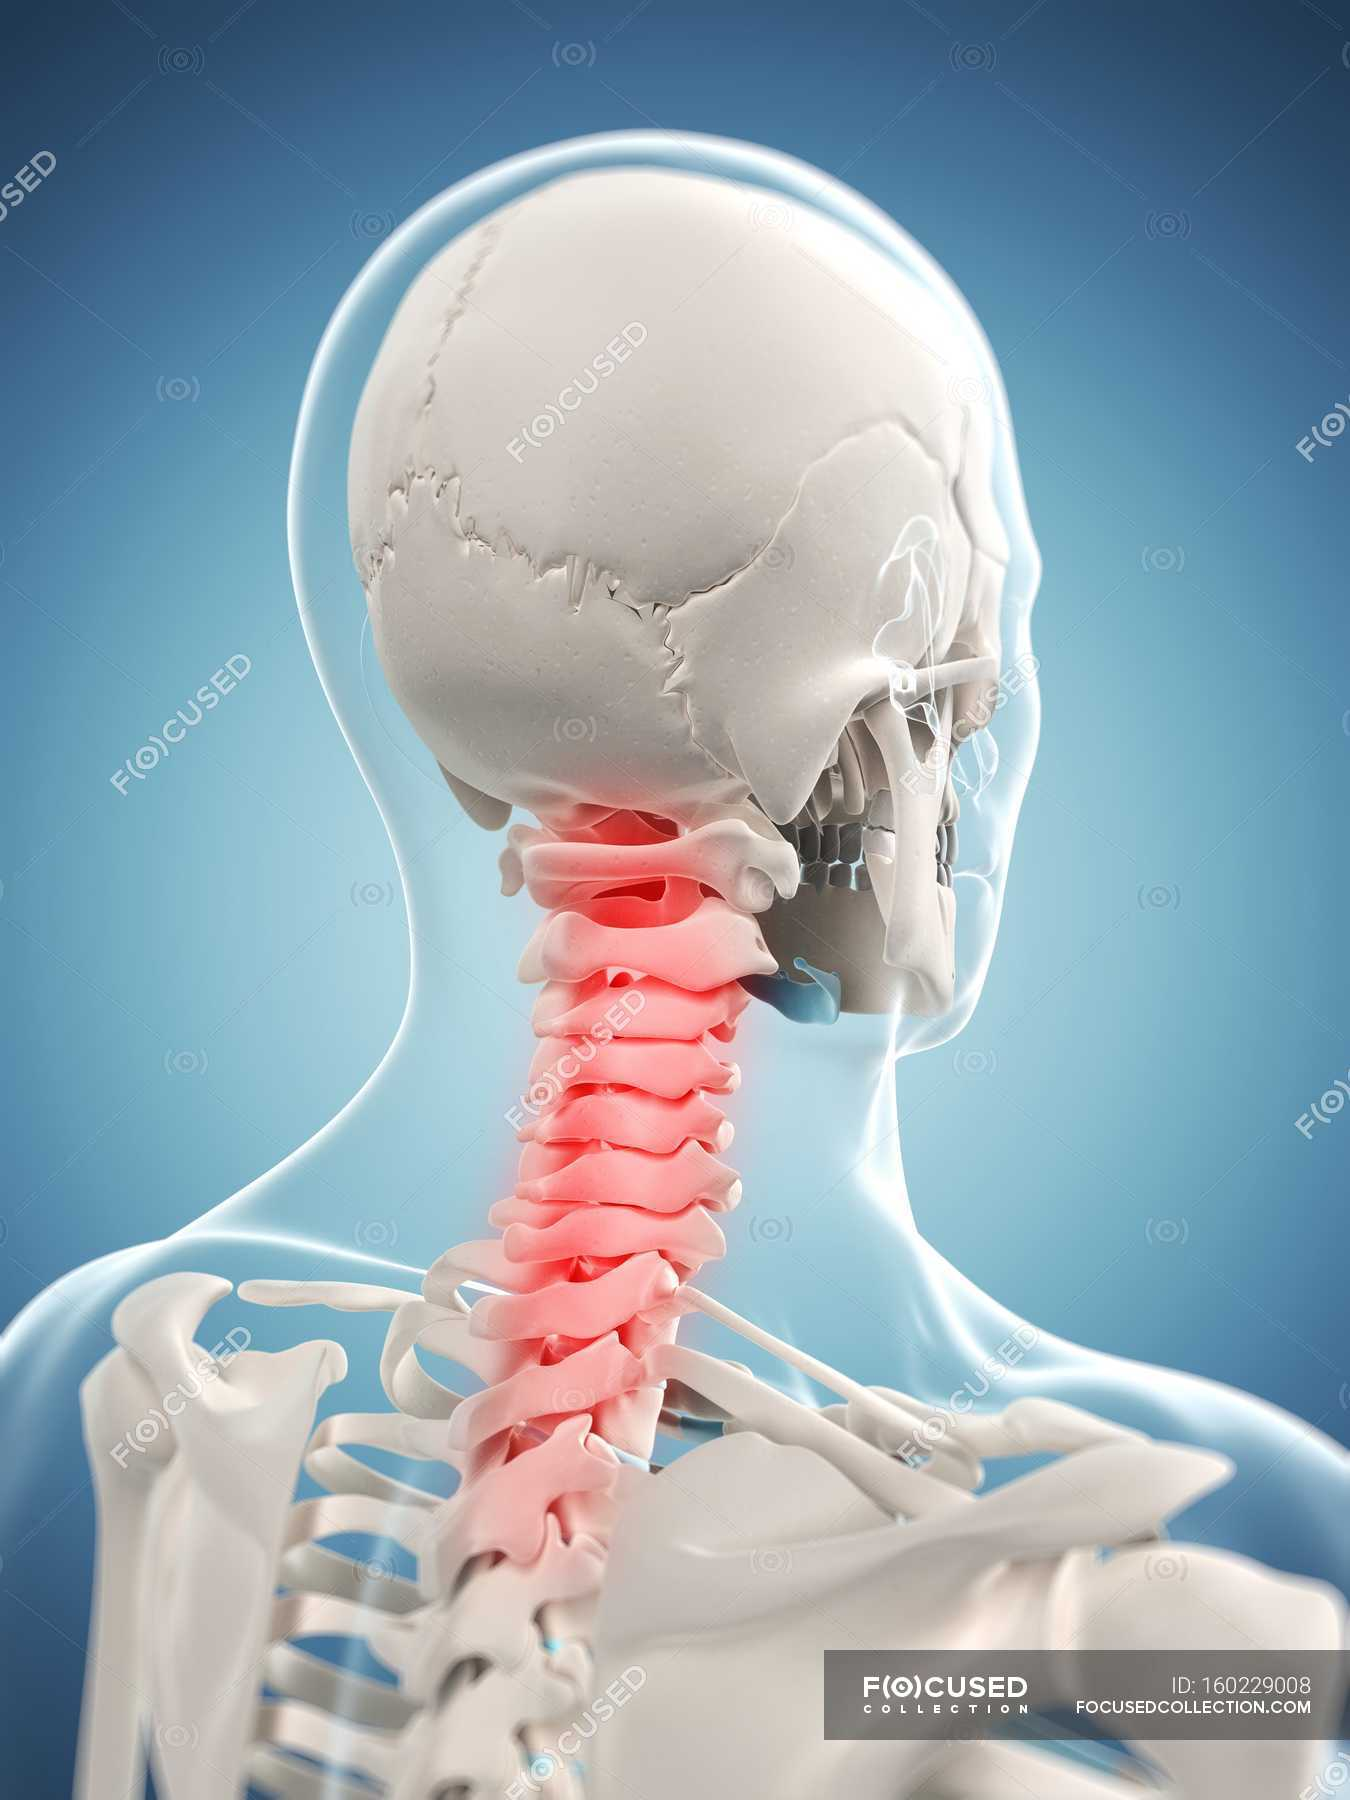 Pain Localized In Cervical Region Of Spine Stock Photo 160229008